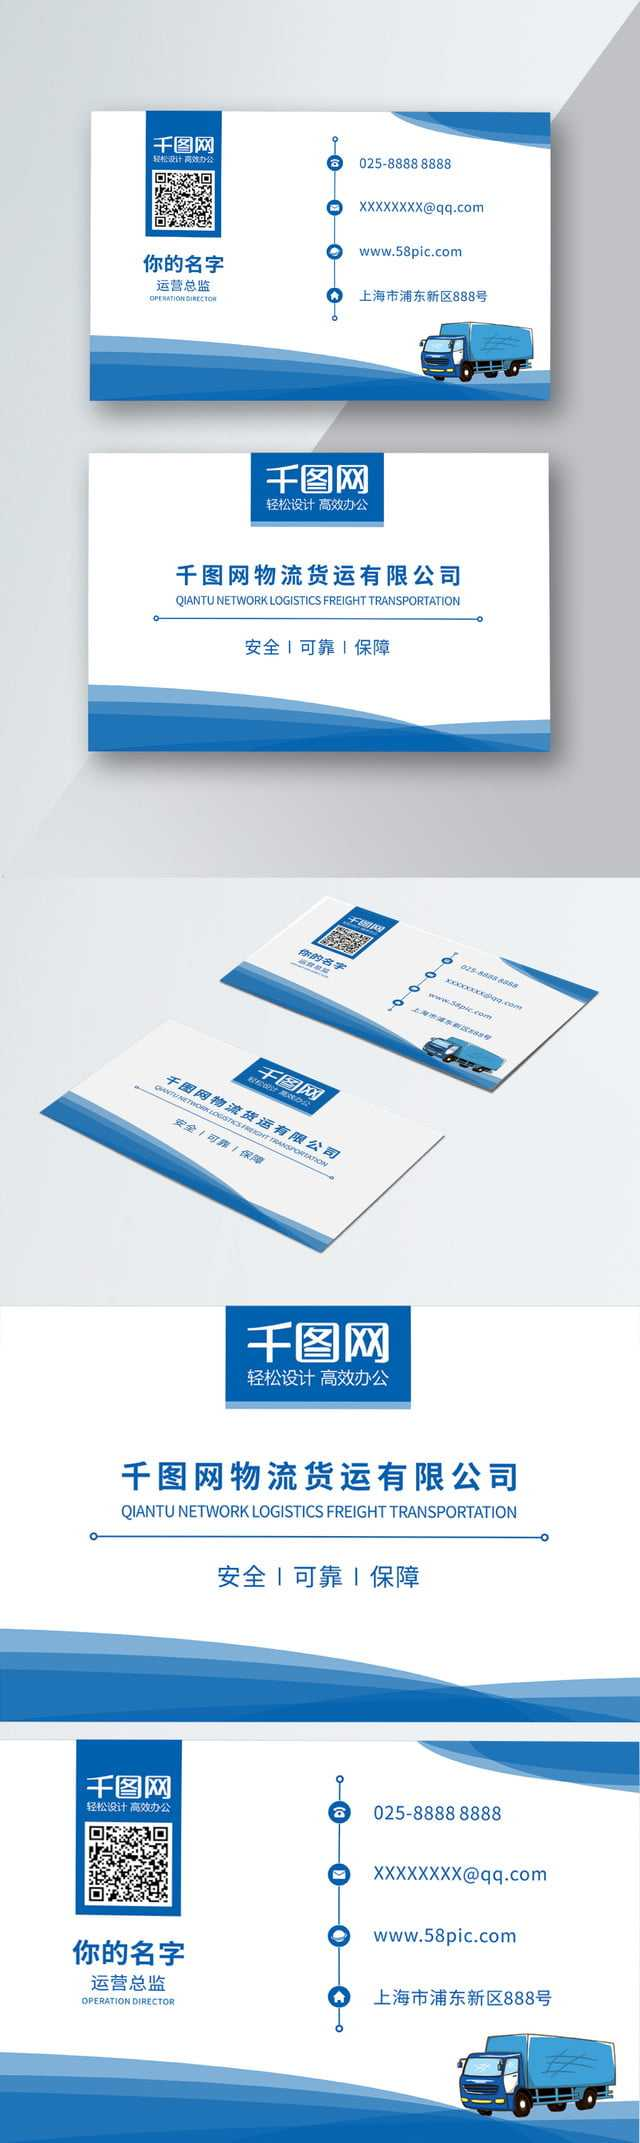 Cargo Company Business Card Material Download Shipping With Regard To Transport Business Cards Templates Free